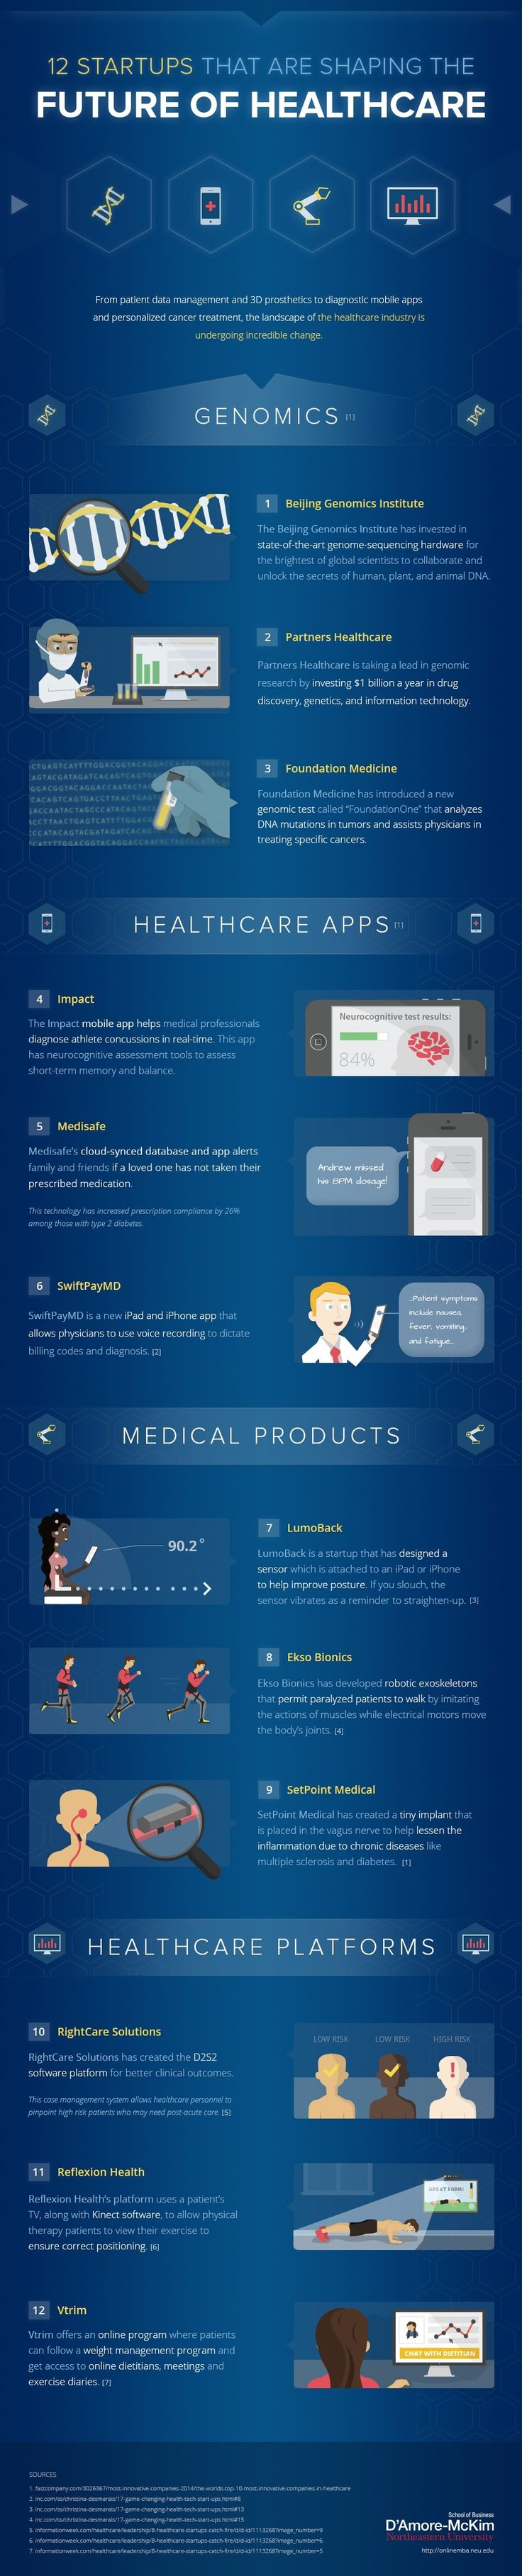 12 Companies Shaping the Future of #DigitalHealth